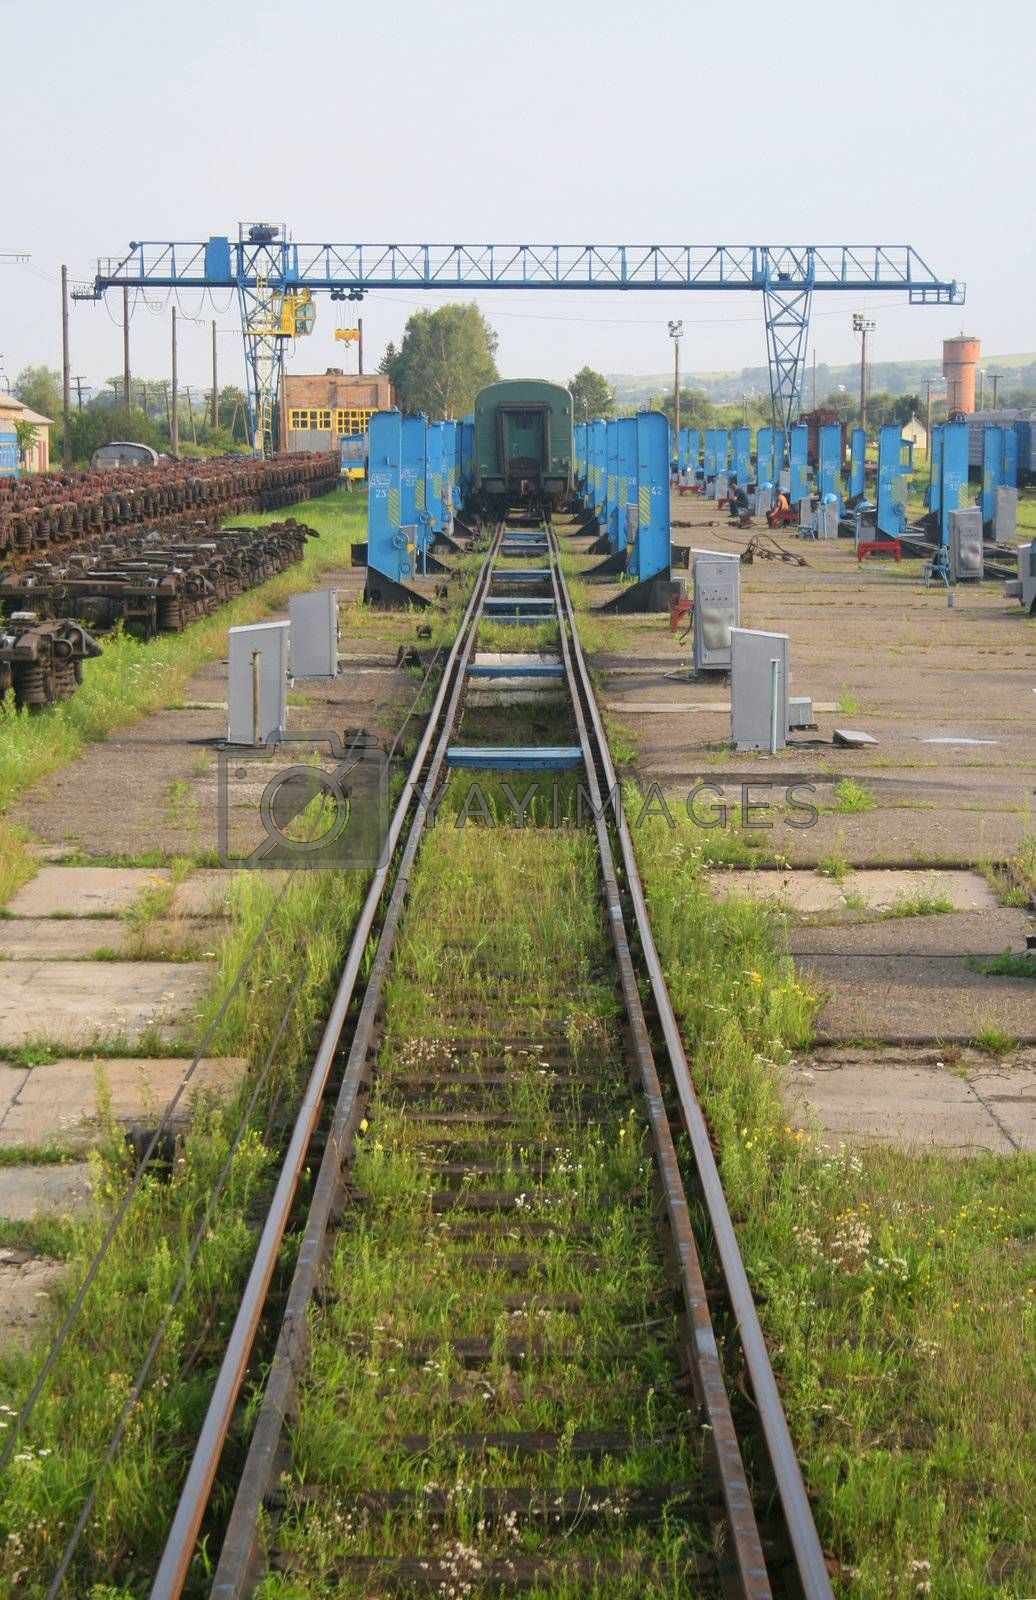 Eastern european train depot for changing wheels on carriages